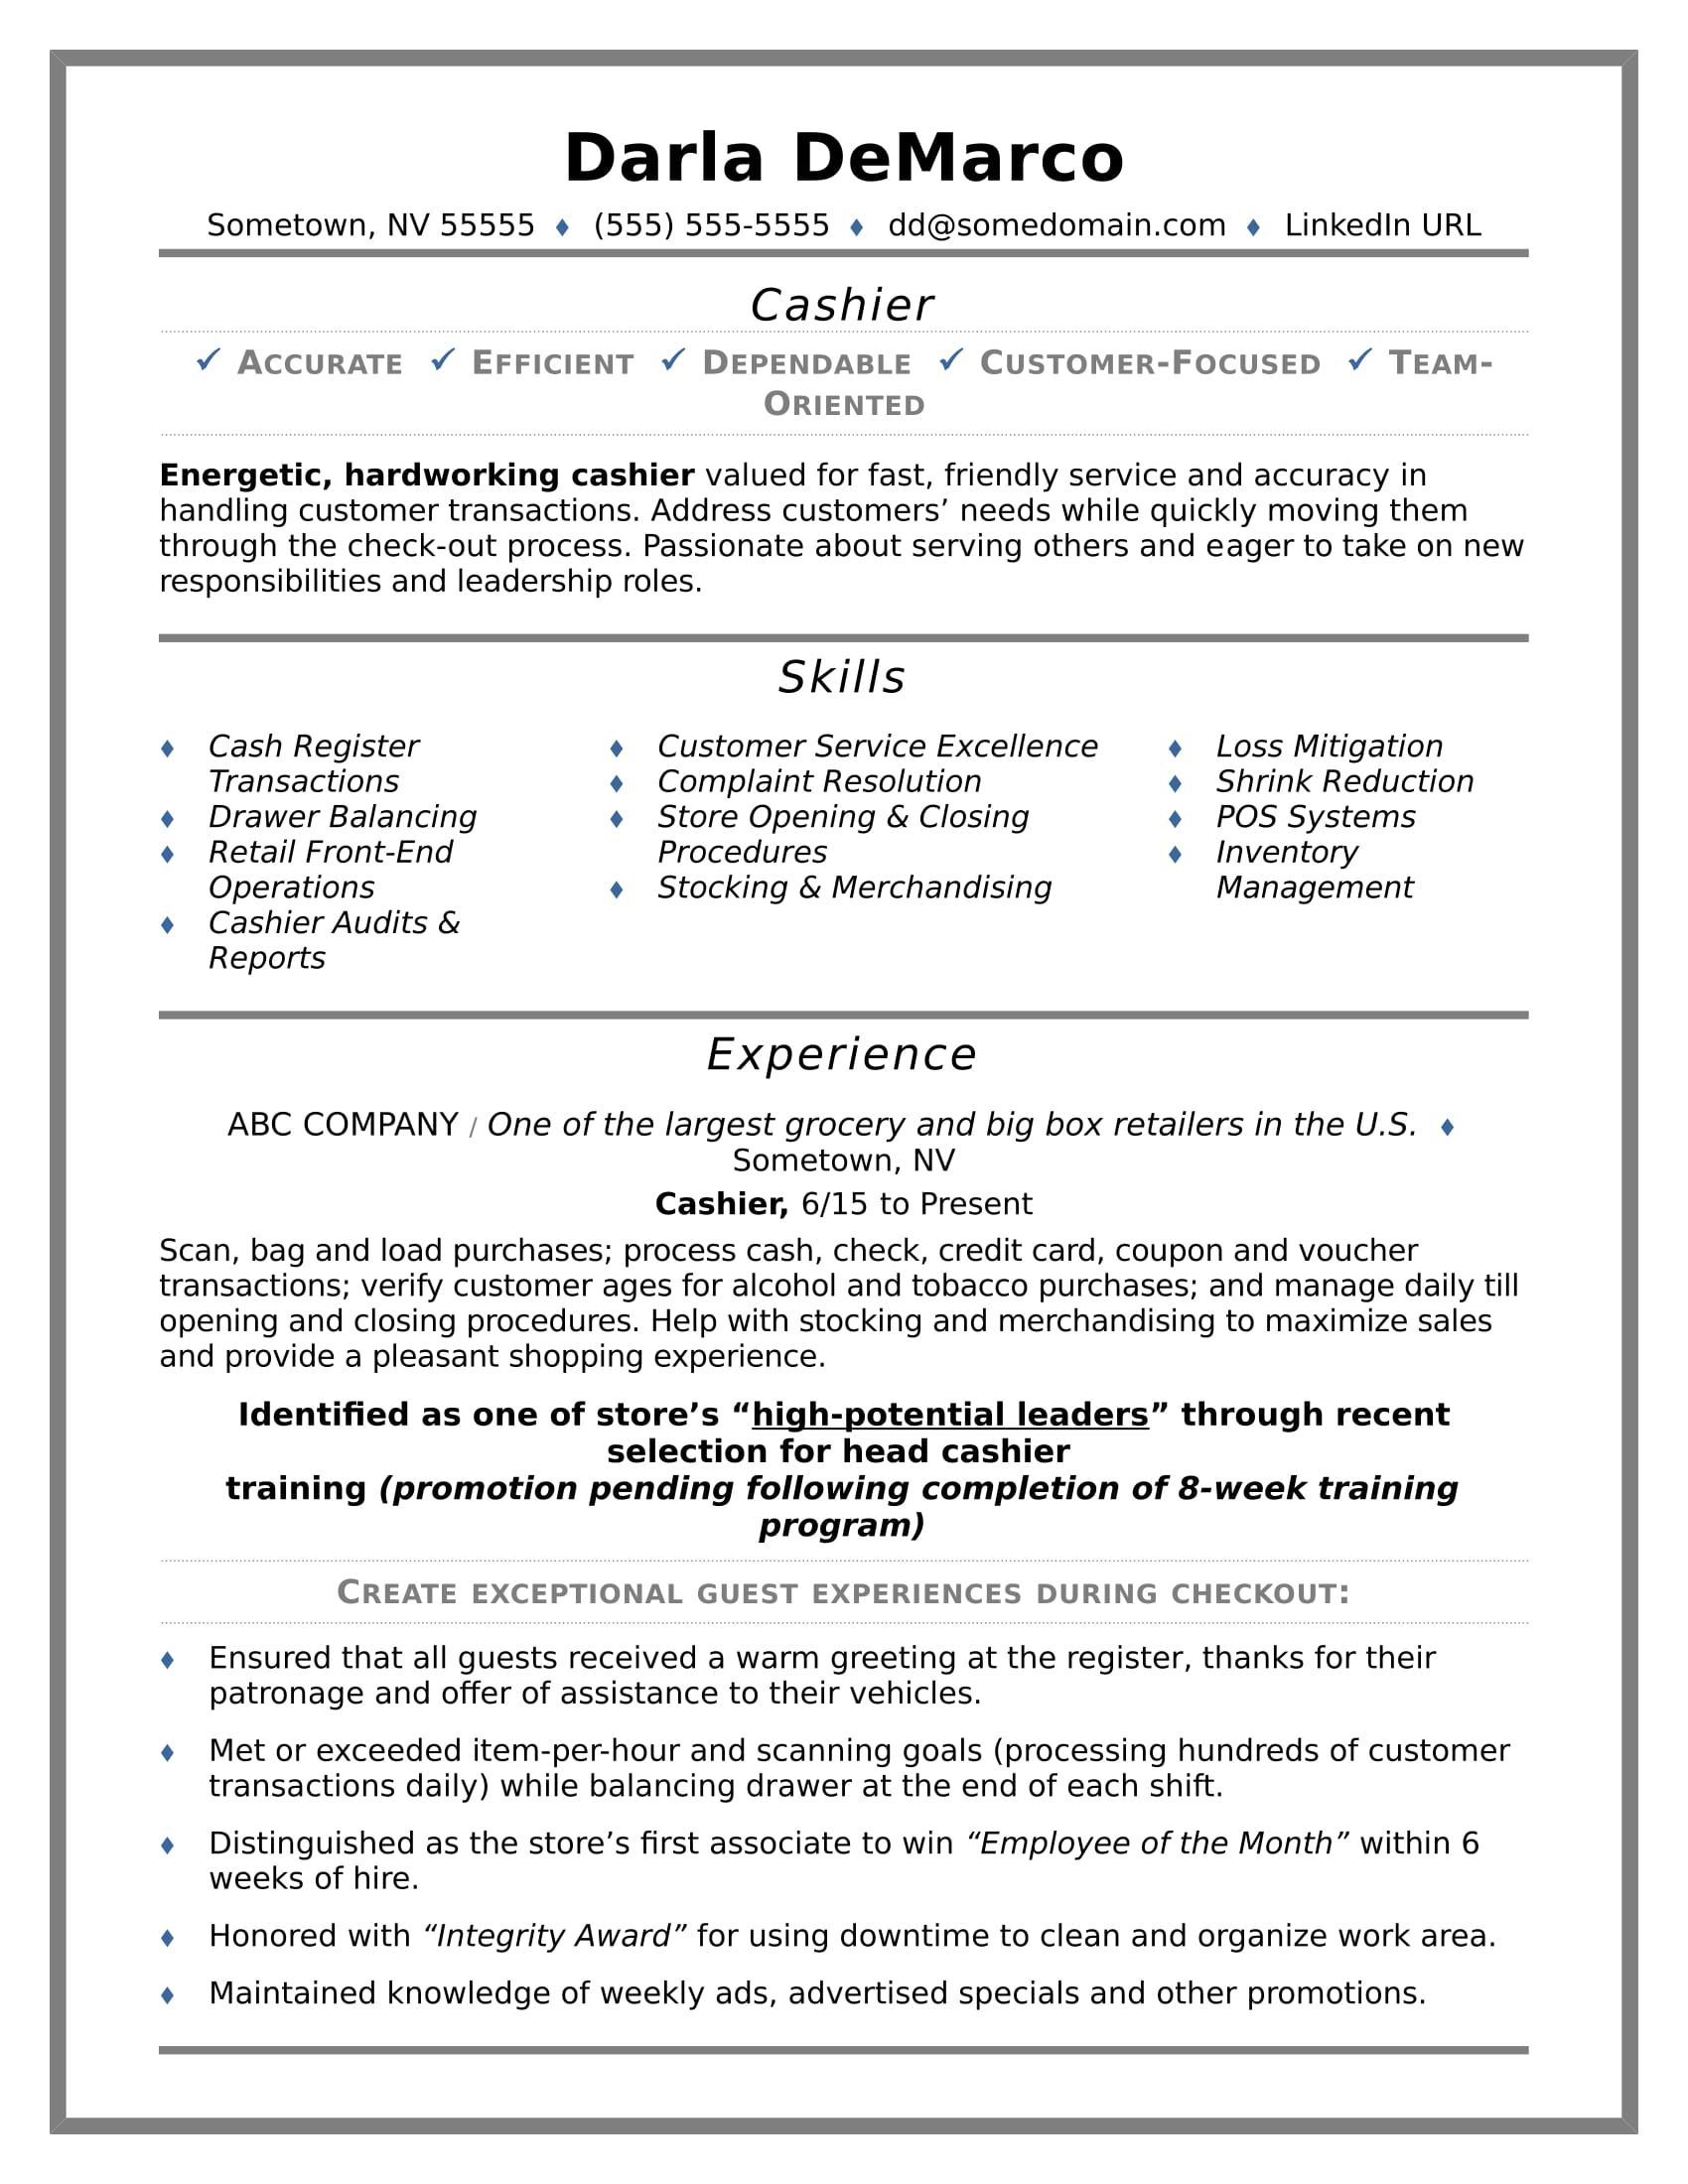 cashier resume sample monster duties and responsibilities positive office assistant job Resume Sample Resume Duties And Responsibilities